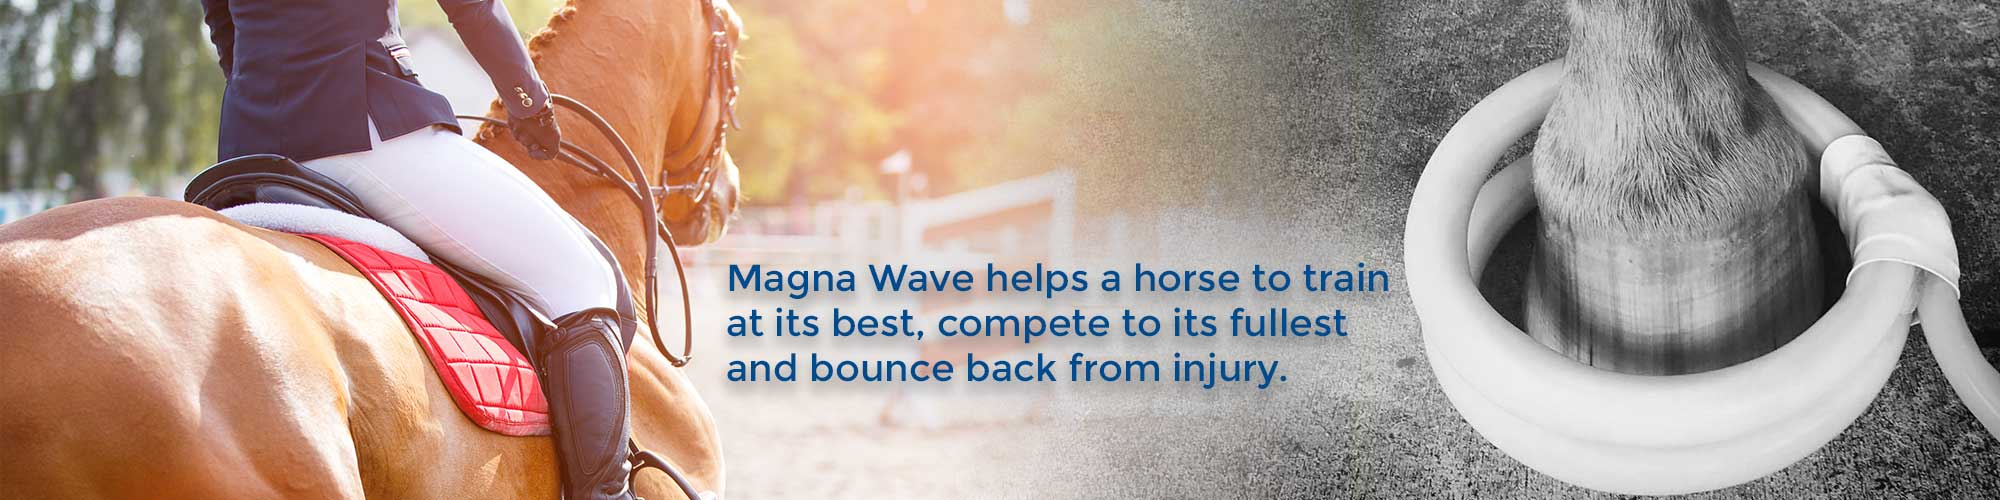 Magna Wave helps a horse to train at its best, compete to its fullest and bounce back from injury.